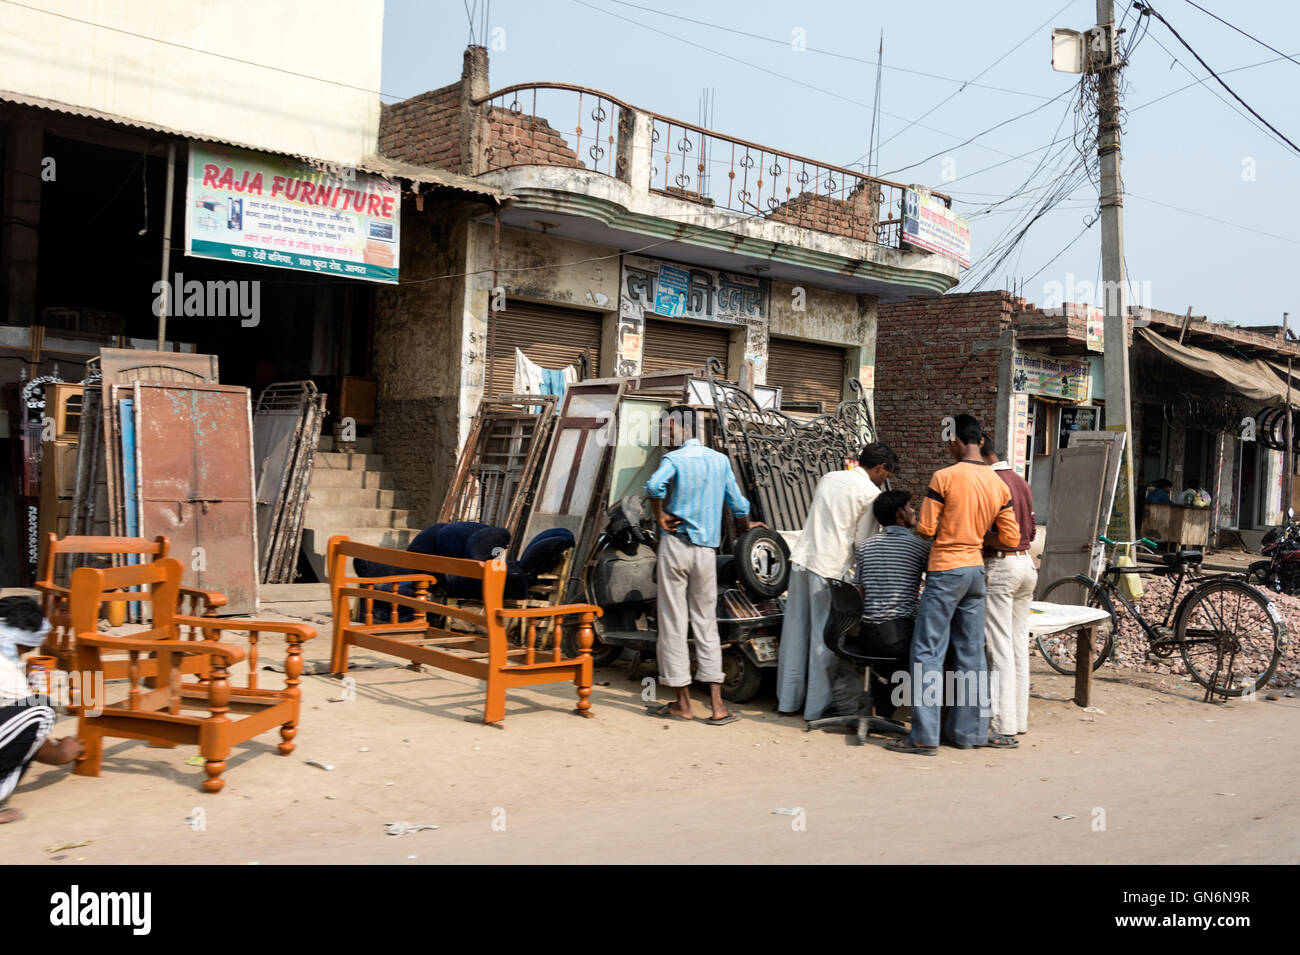 A furniture making shop beside a main street,Agra, Uttar Pradesh.India - Stock Image